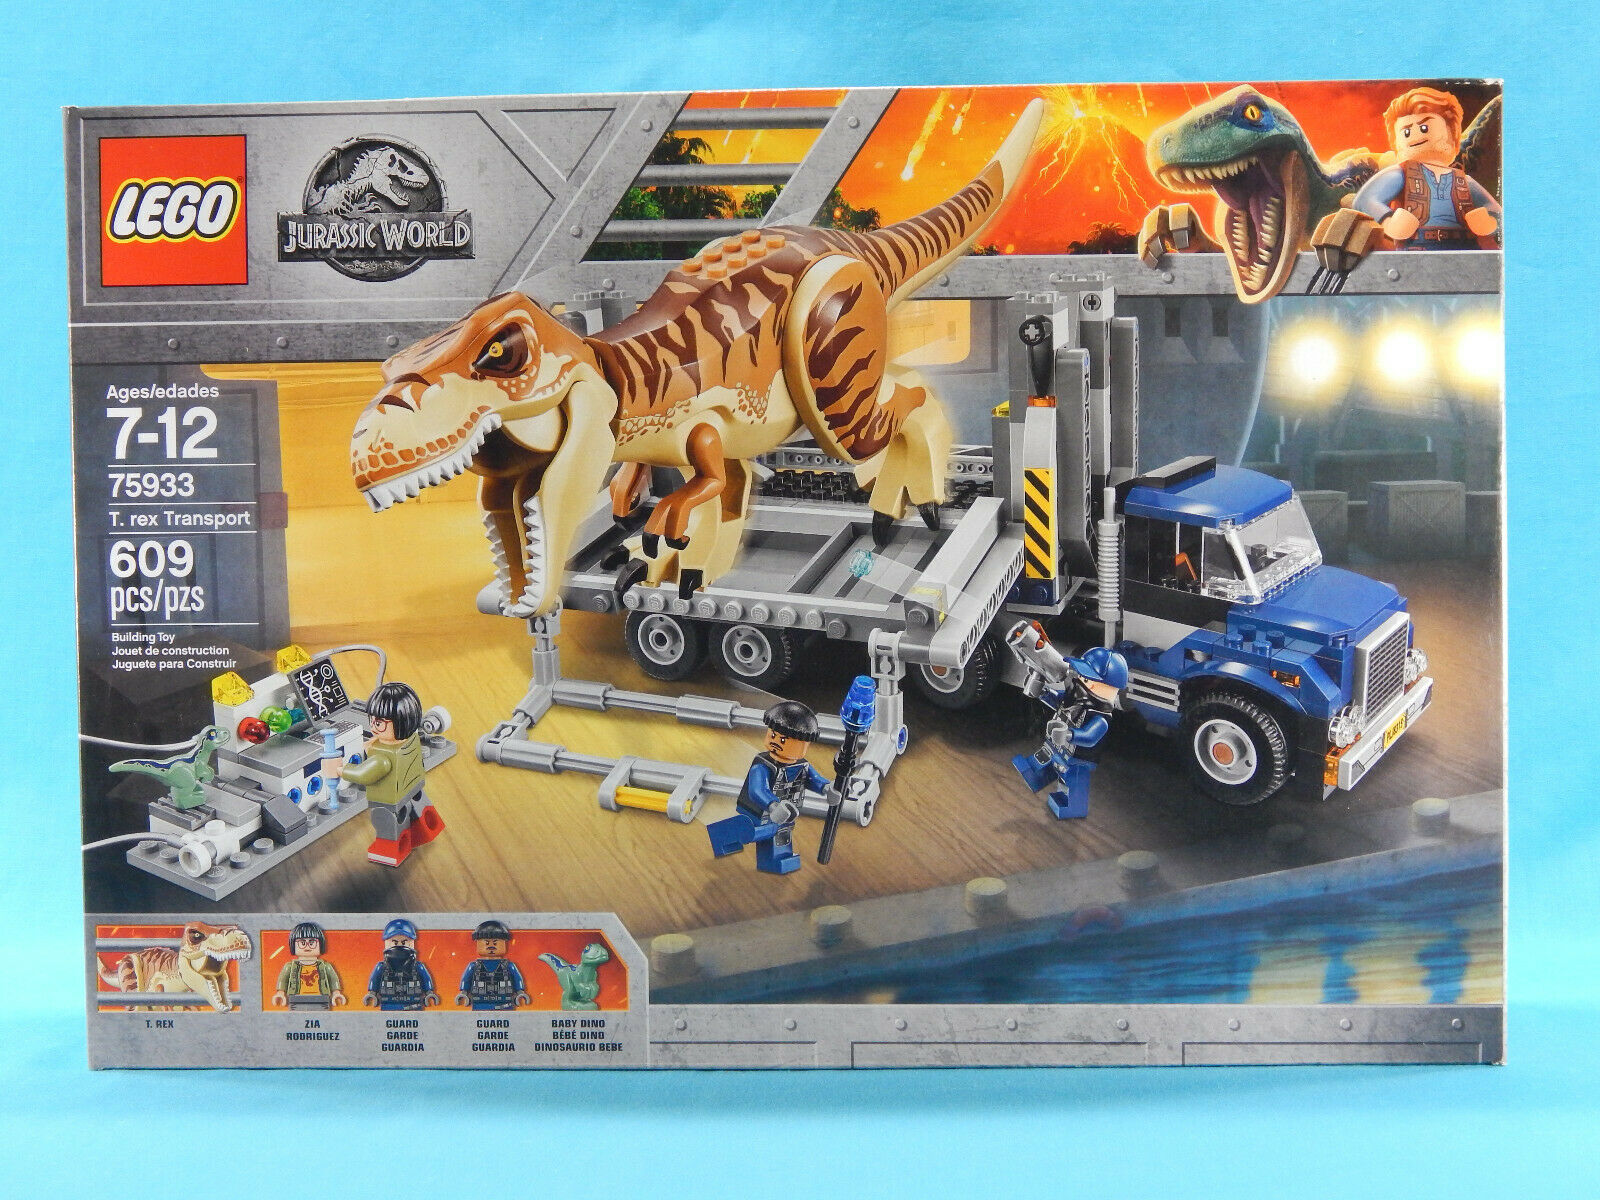 Lego Jurassic World 75933 T. Rex Transport  609pcs nouveau Sealed 2018 Tyrannosaurus  vente avec grande remise